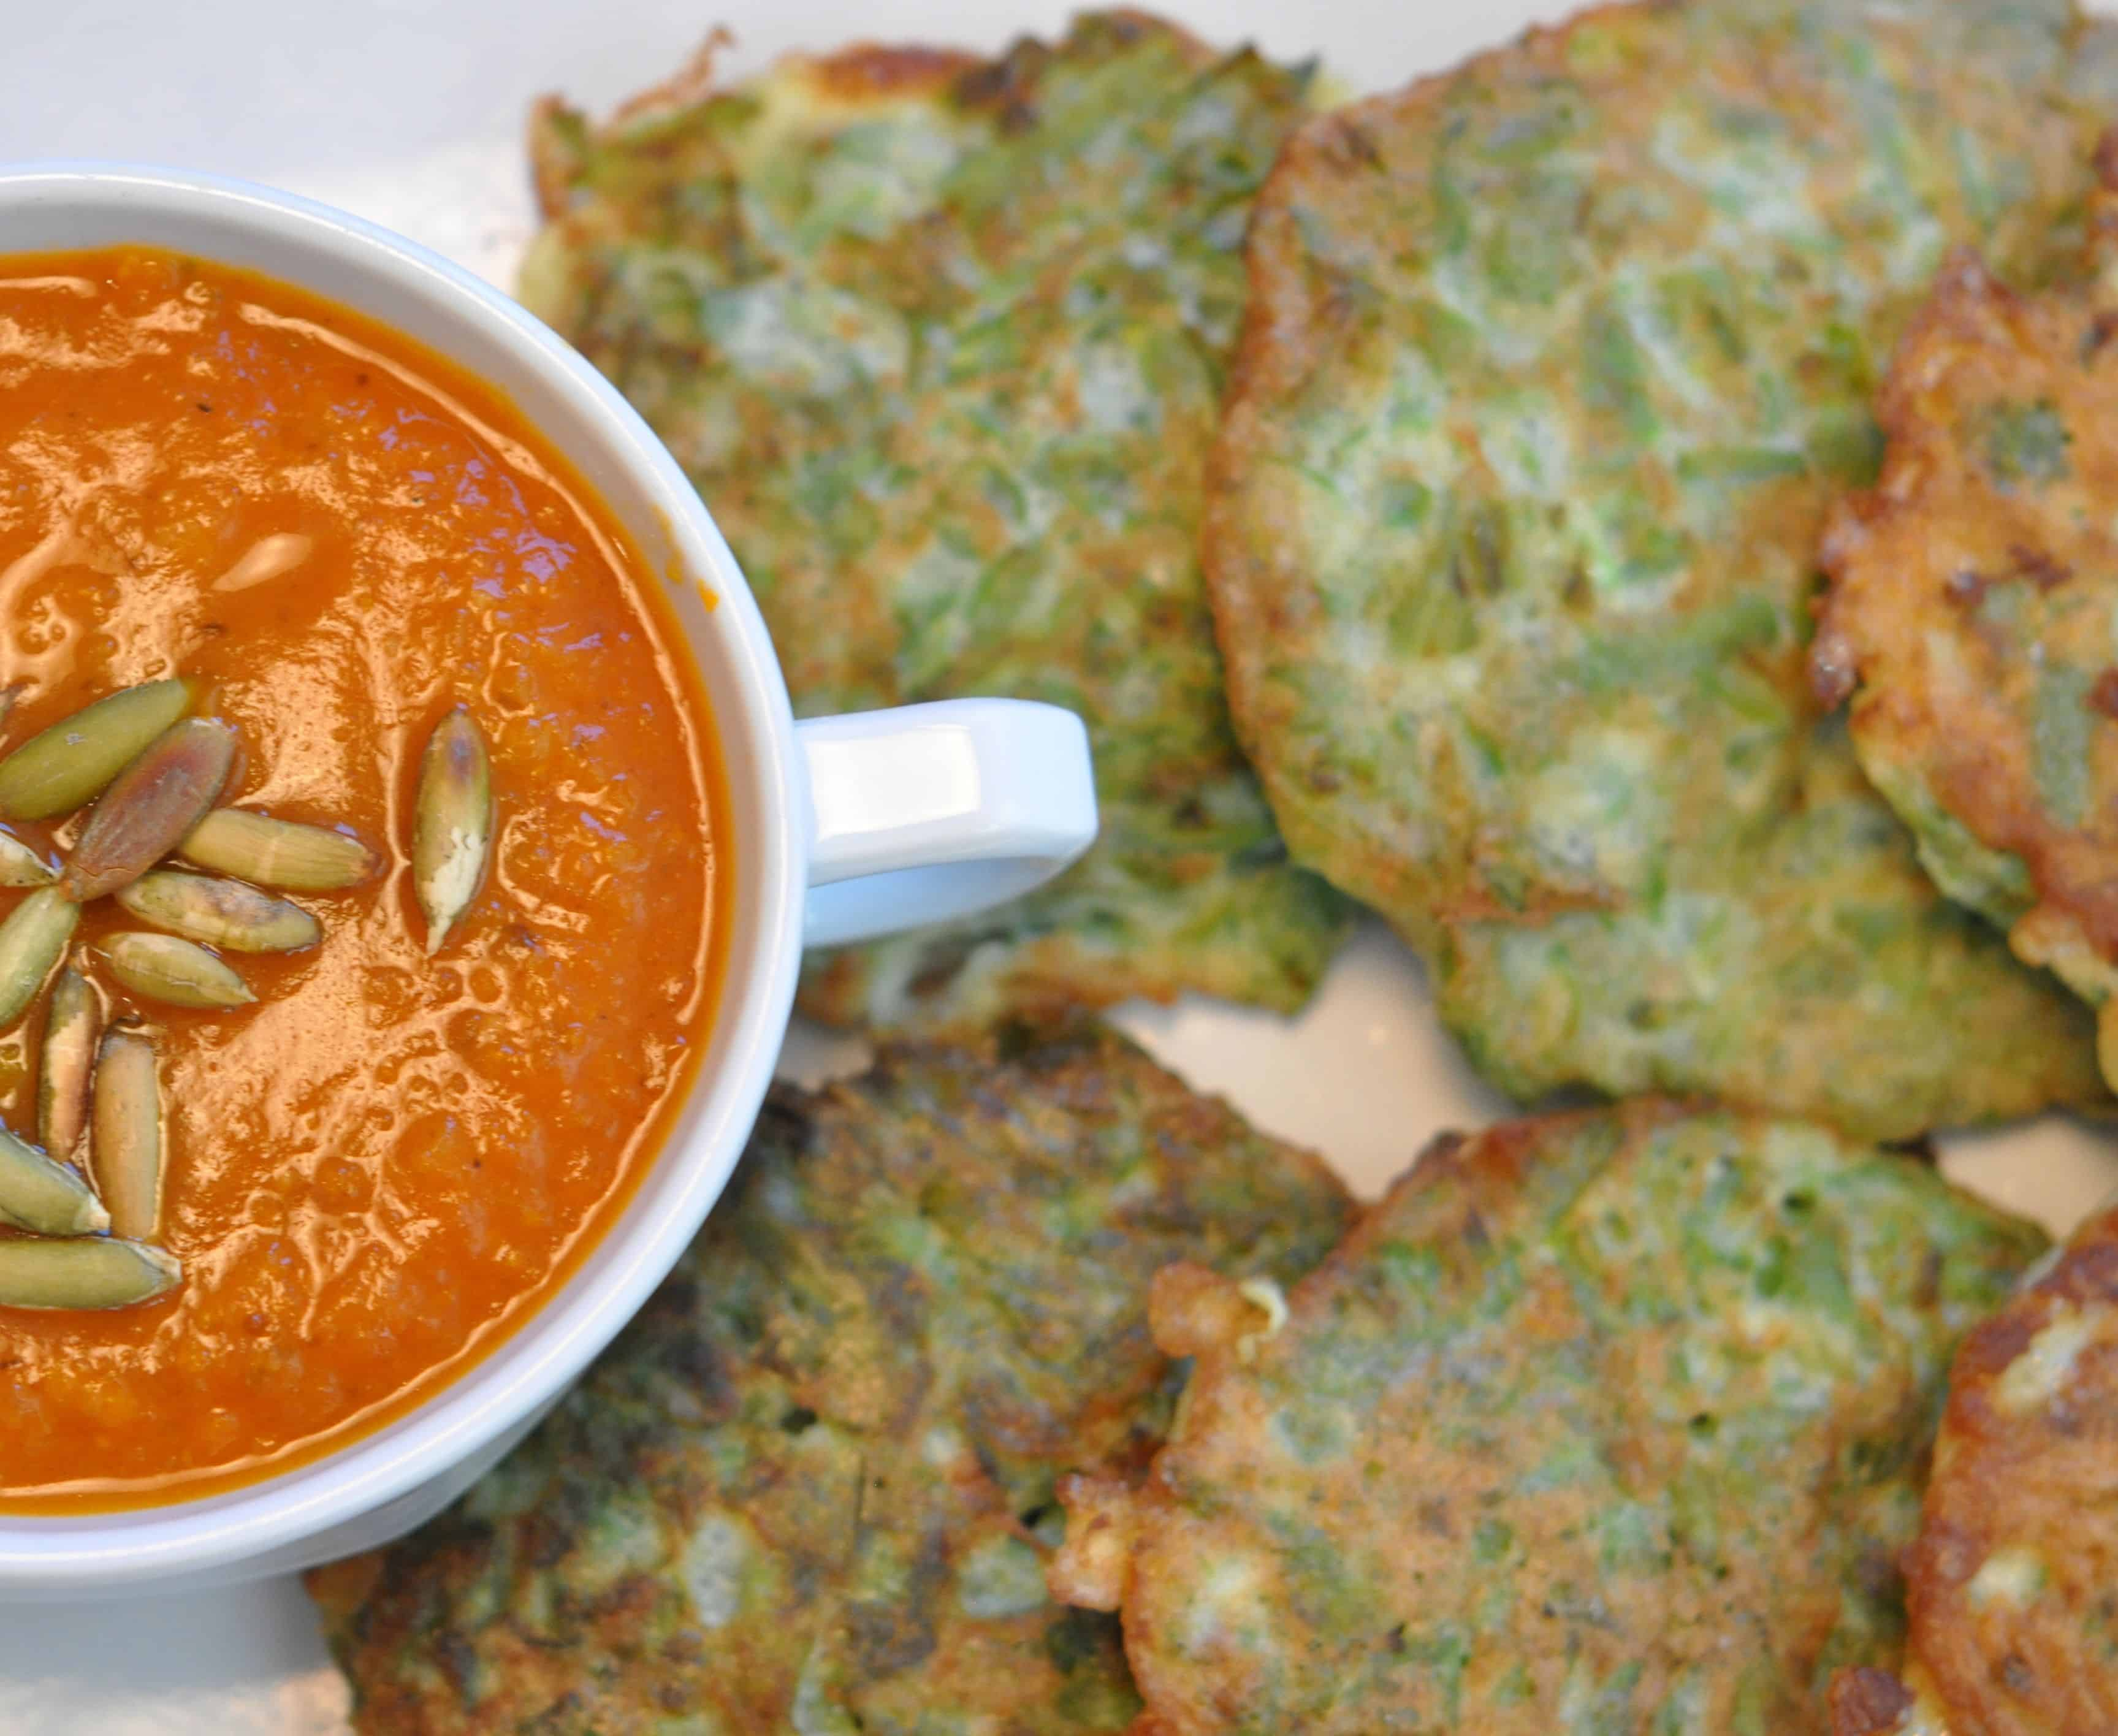 tortitas de ejote is a tradional dish of fresh green bean pancakes served with tomato salsa